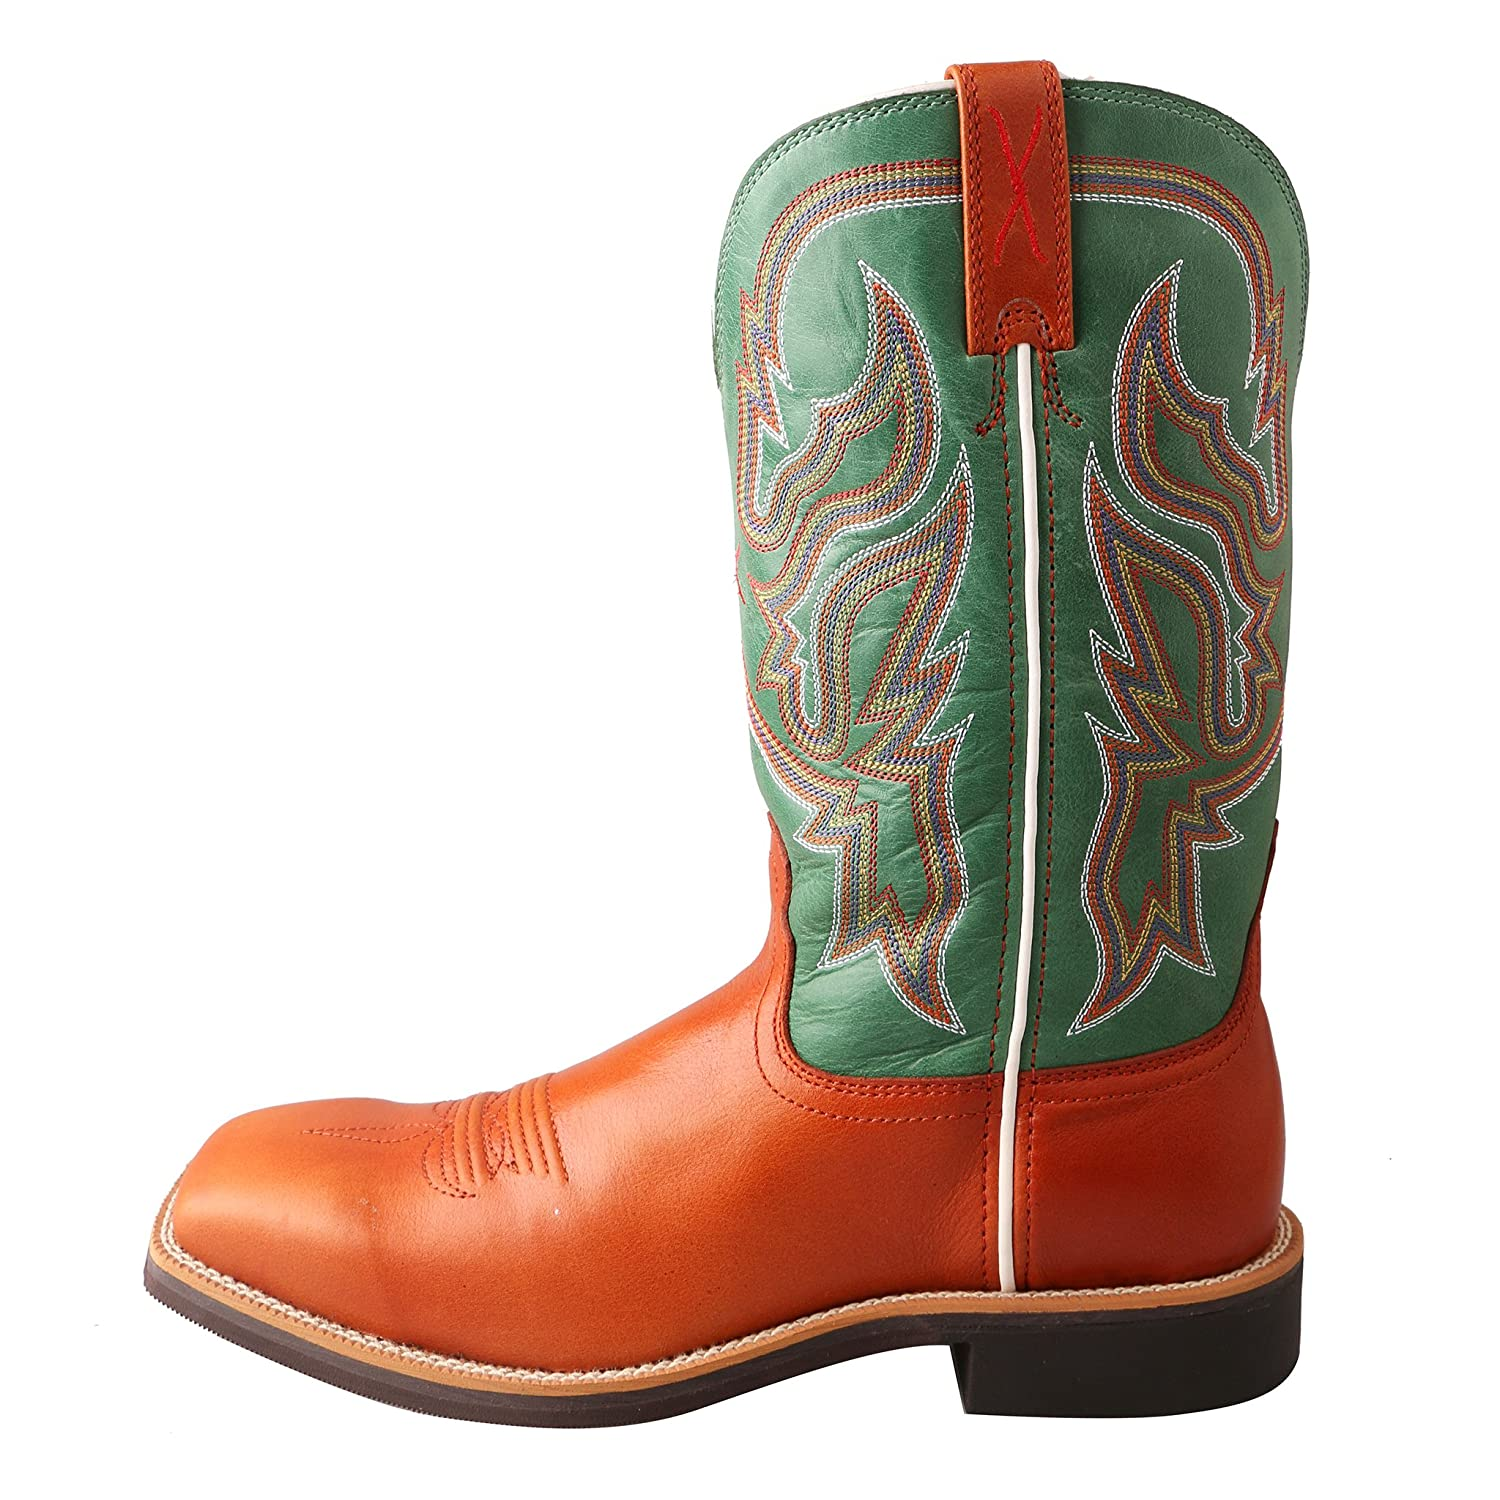 Twisted X Women's Neon Green Top Hand Cowgirl Boot Square Toe - Wth0007 B01ES0RFCS 11|Cognac